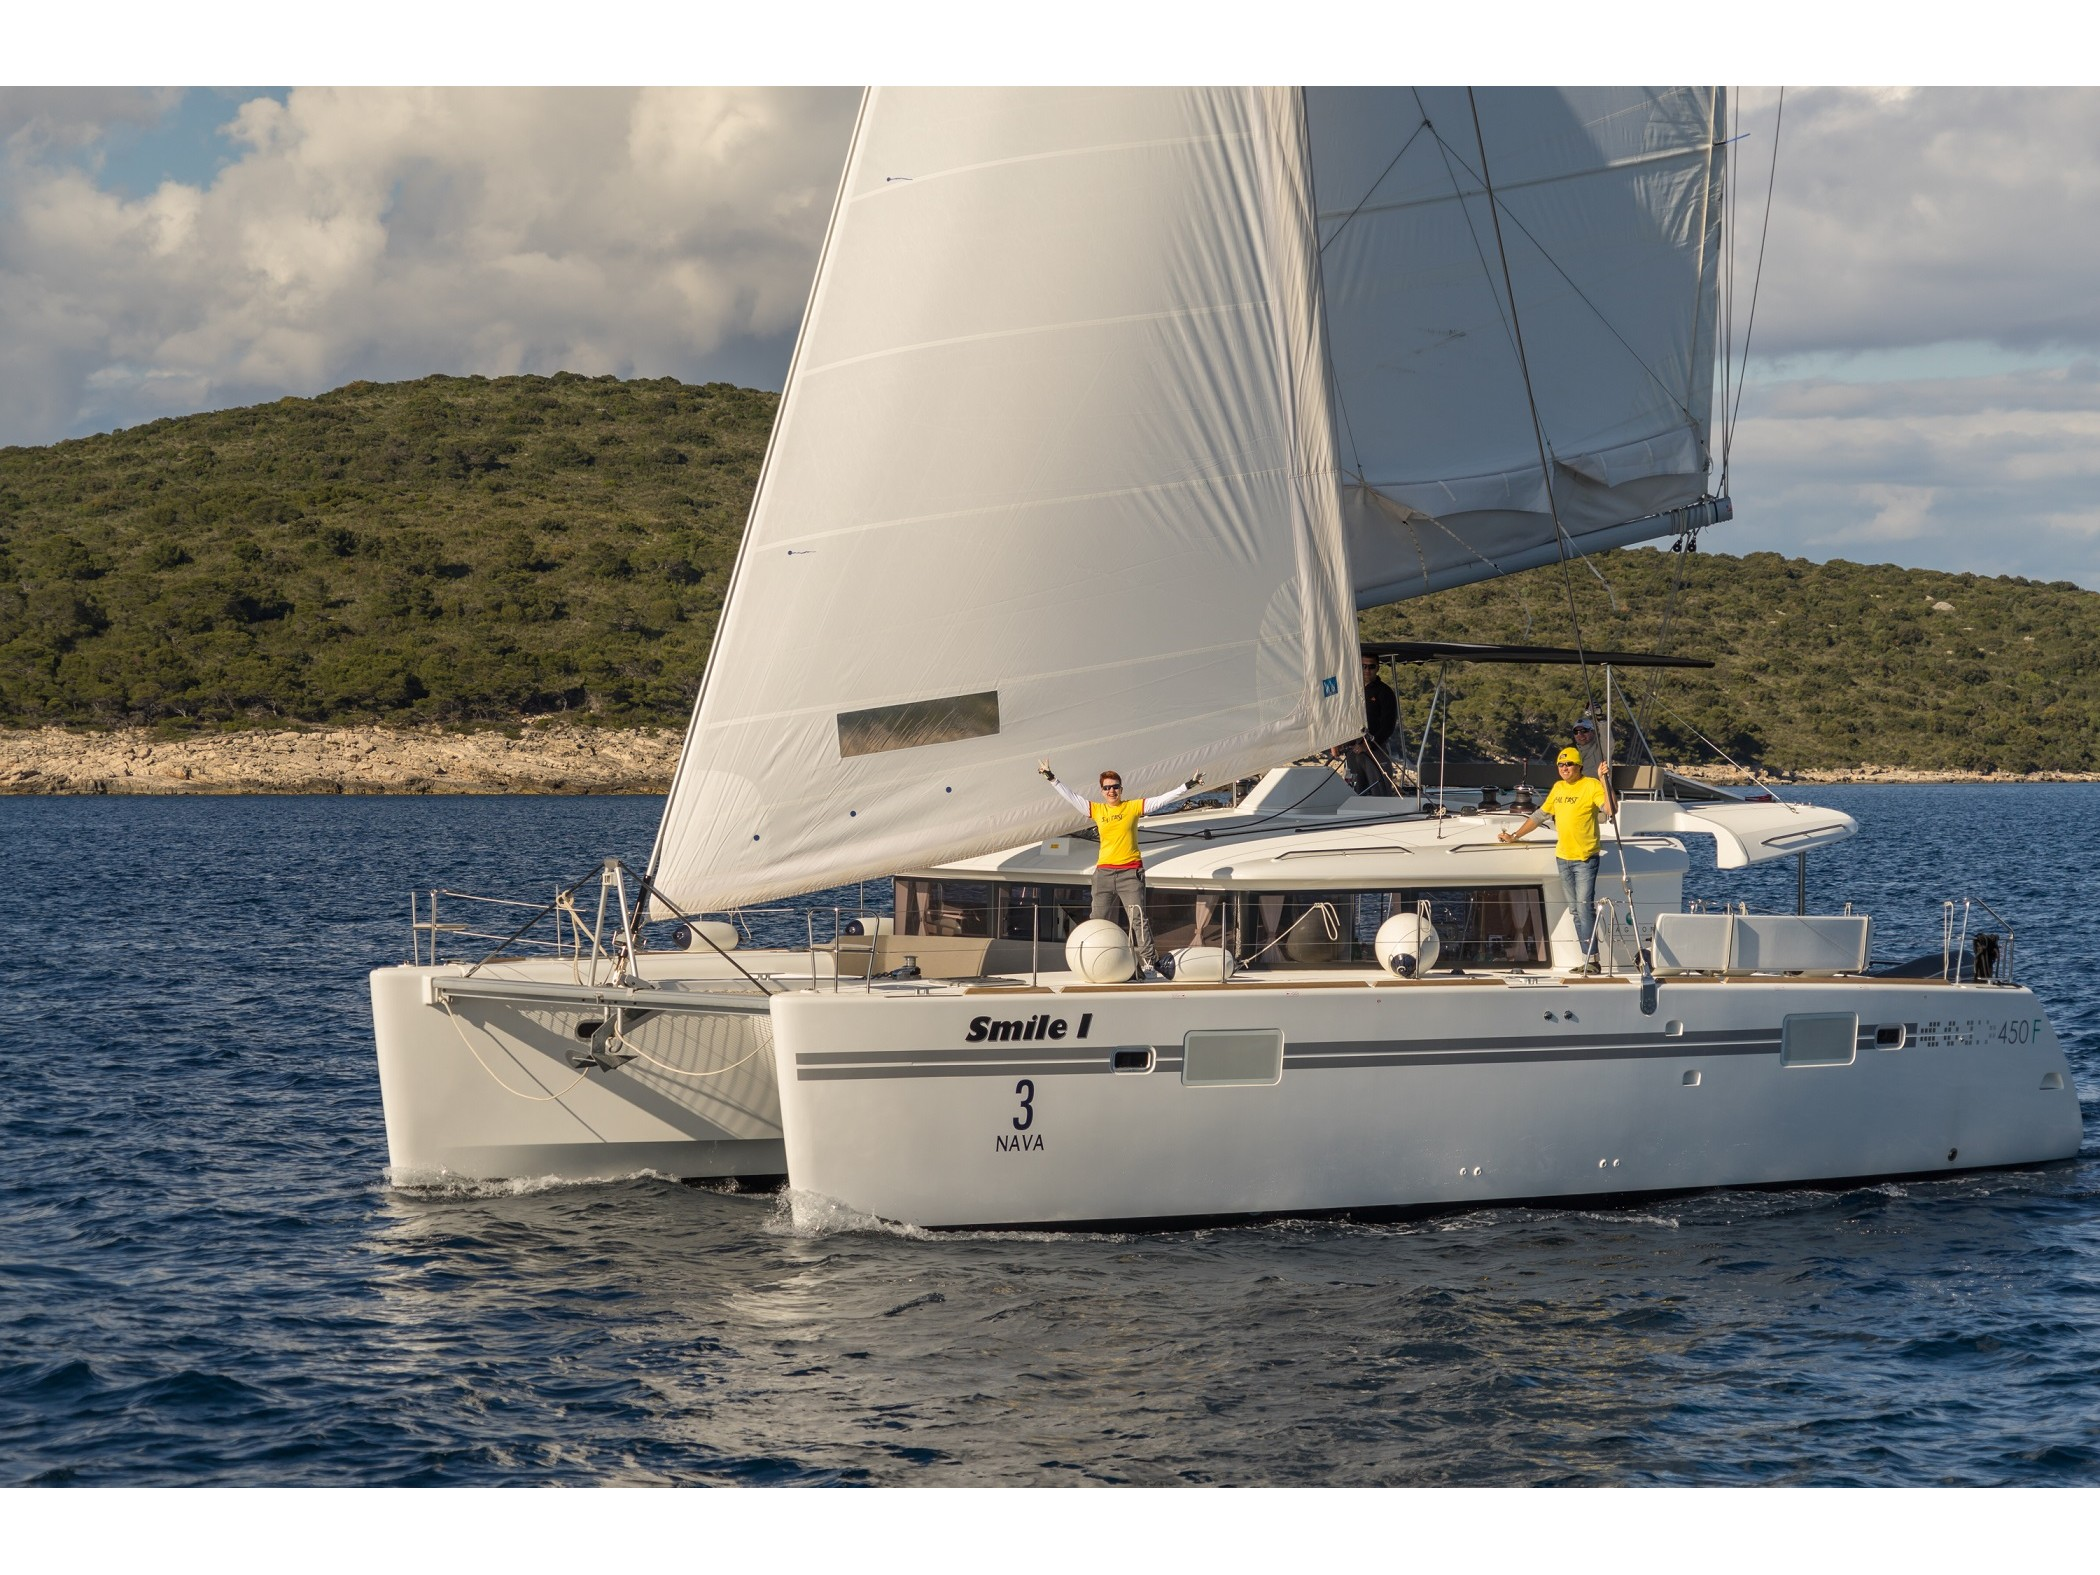 Lagoon 450 (2016) equipped with generator, A/C (sa (SMILE I) Main image - 0